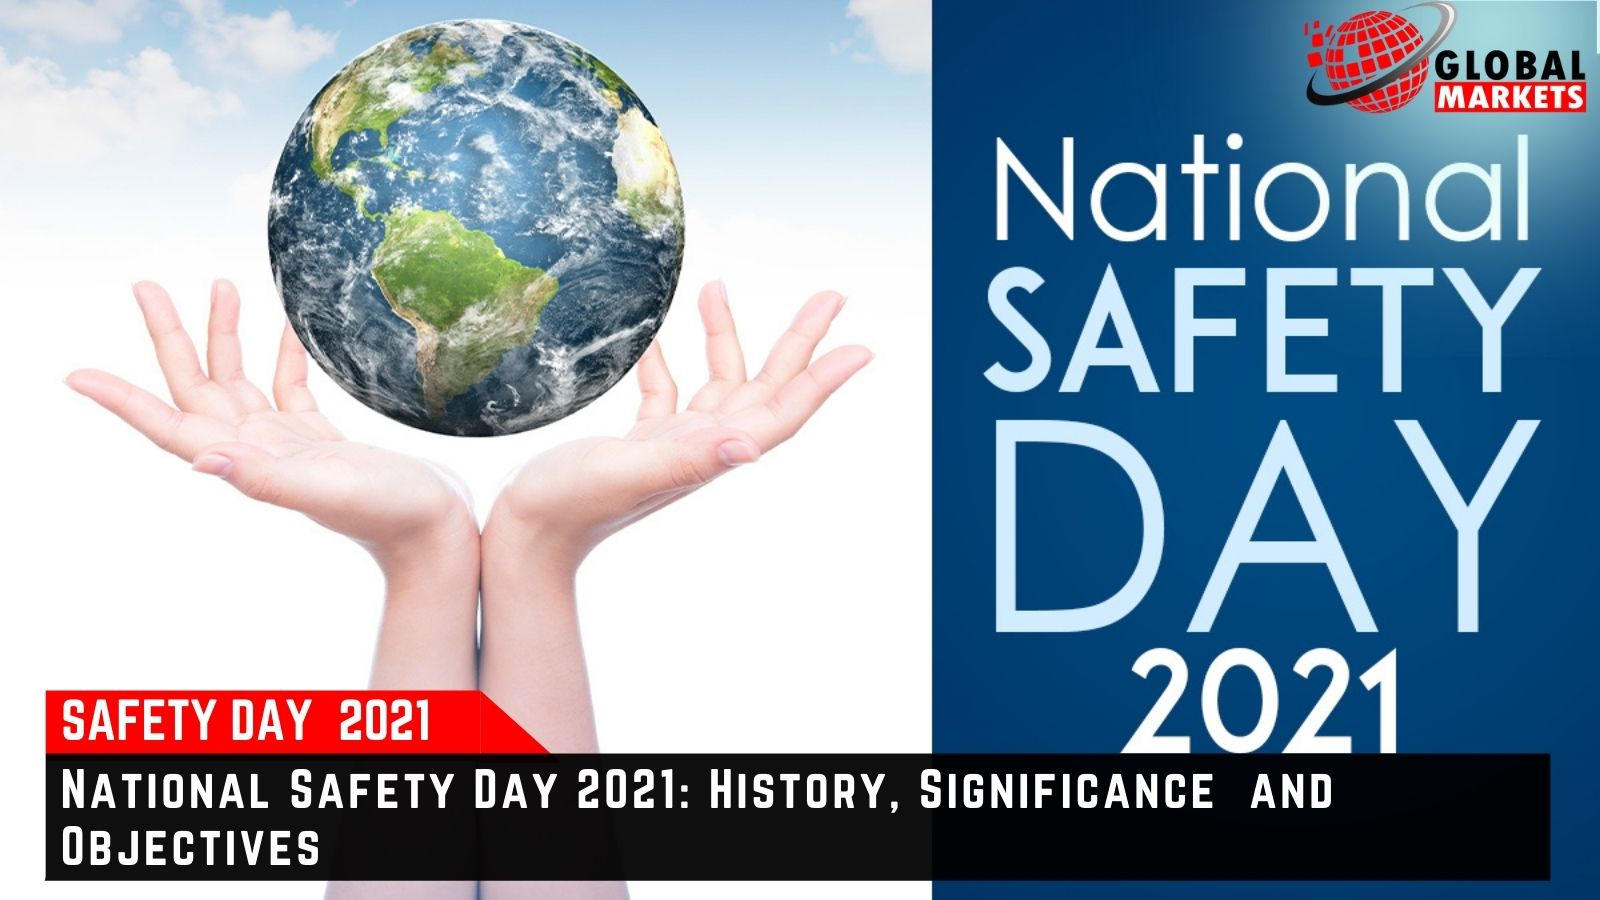 National Safety Day 2021: History, Significance and Objectives.